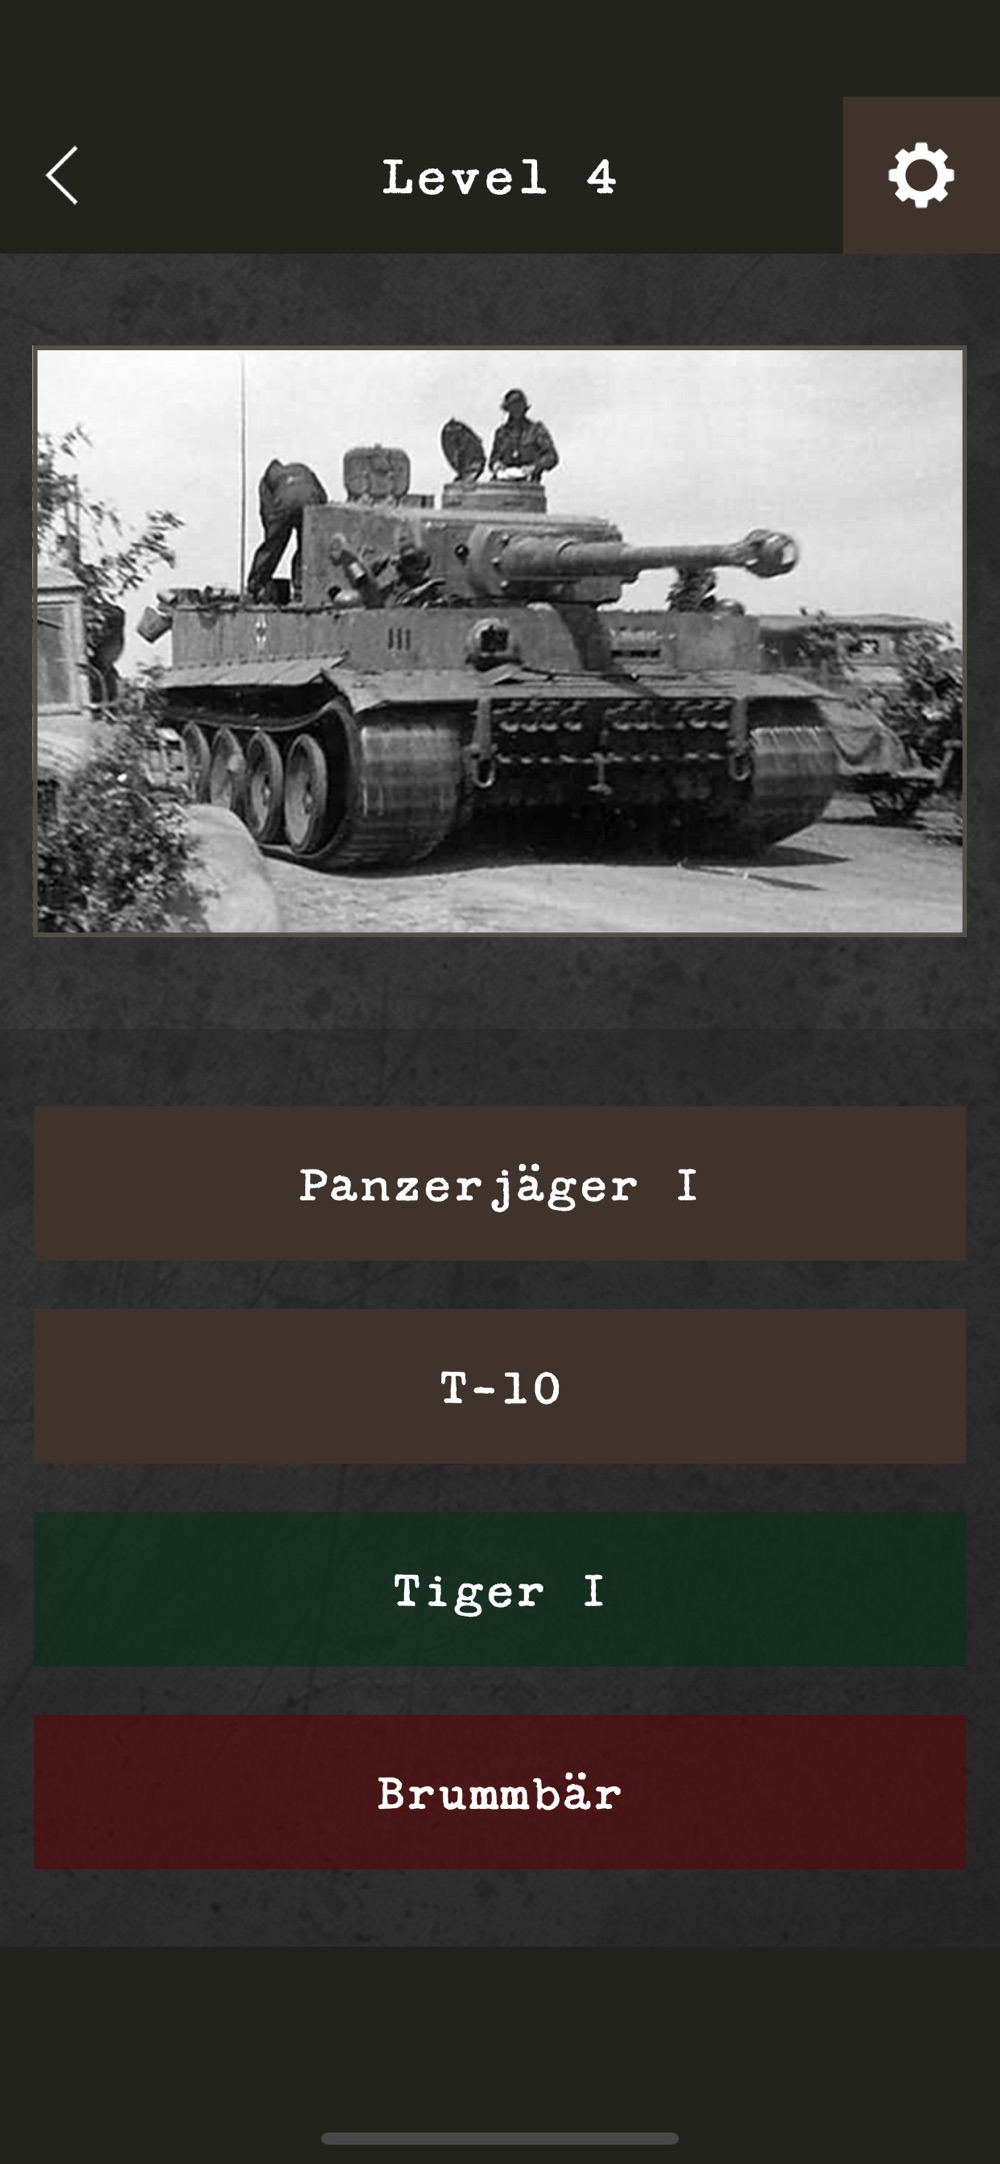 Hack tool for Tank Spotter's Quiz